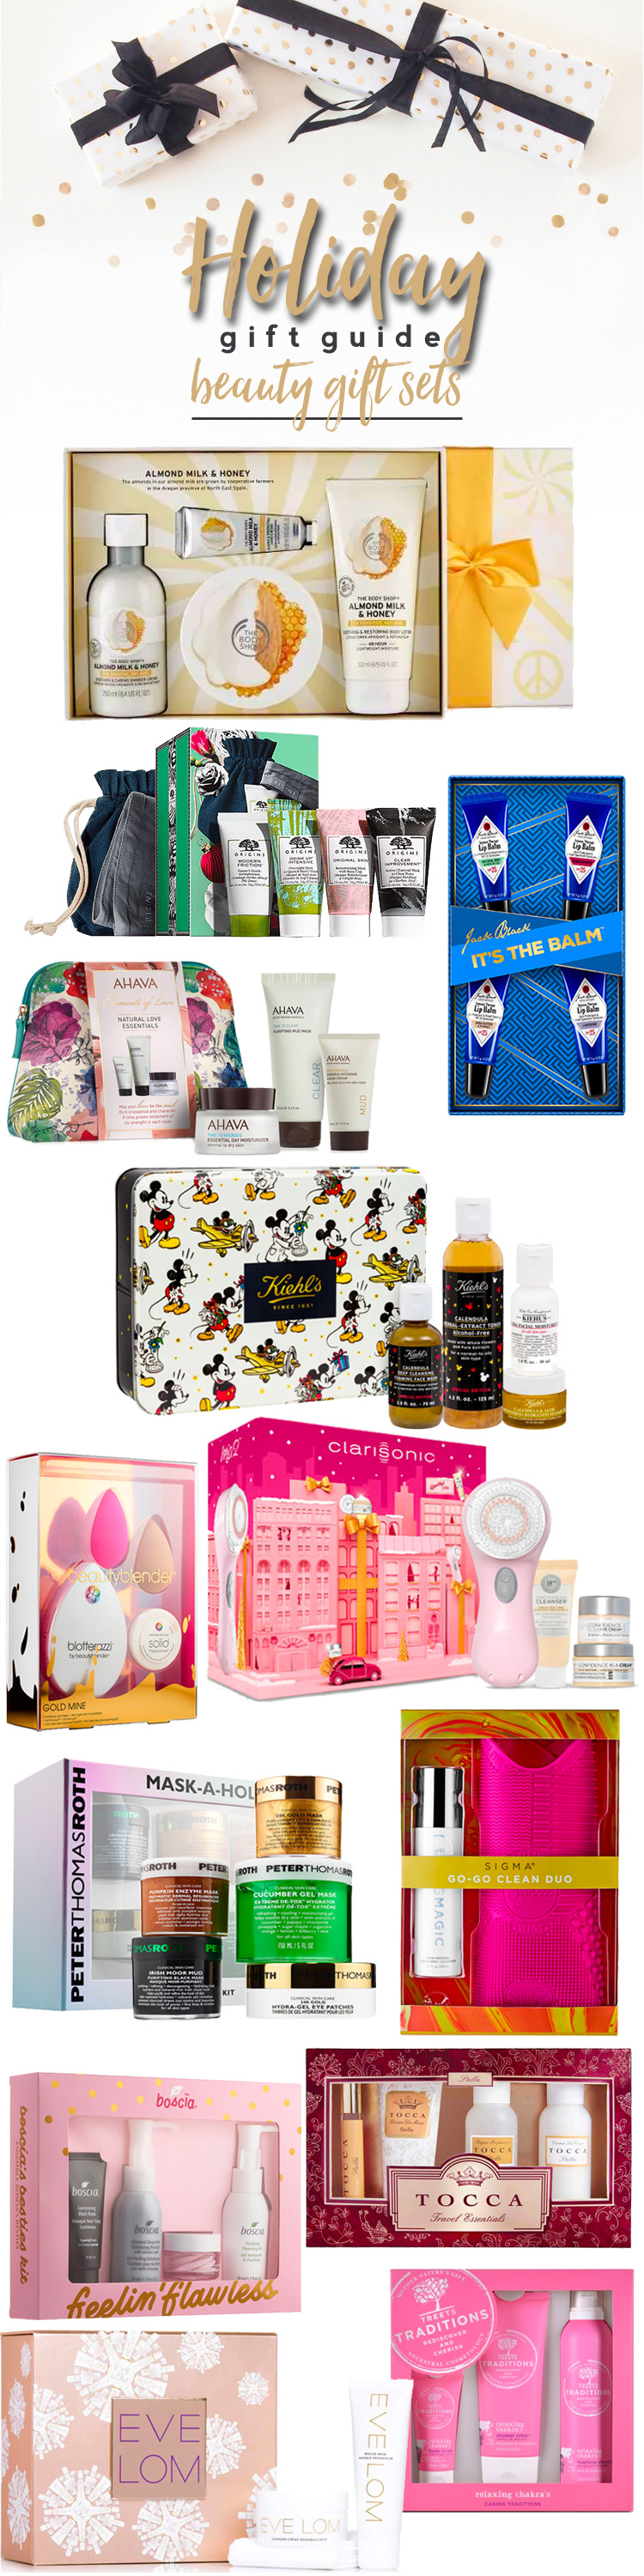 Holiday Gift Guide 2017: Best Beauty Gift Sets